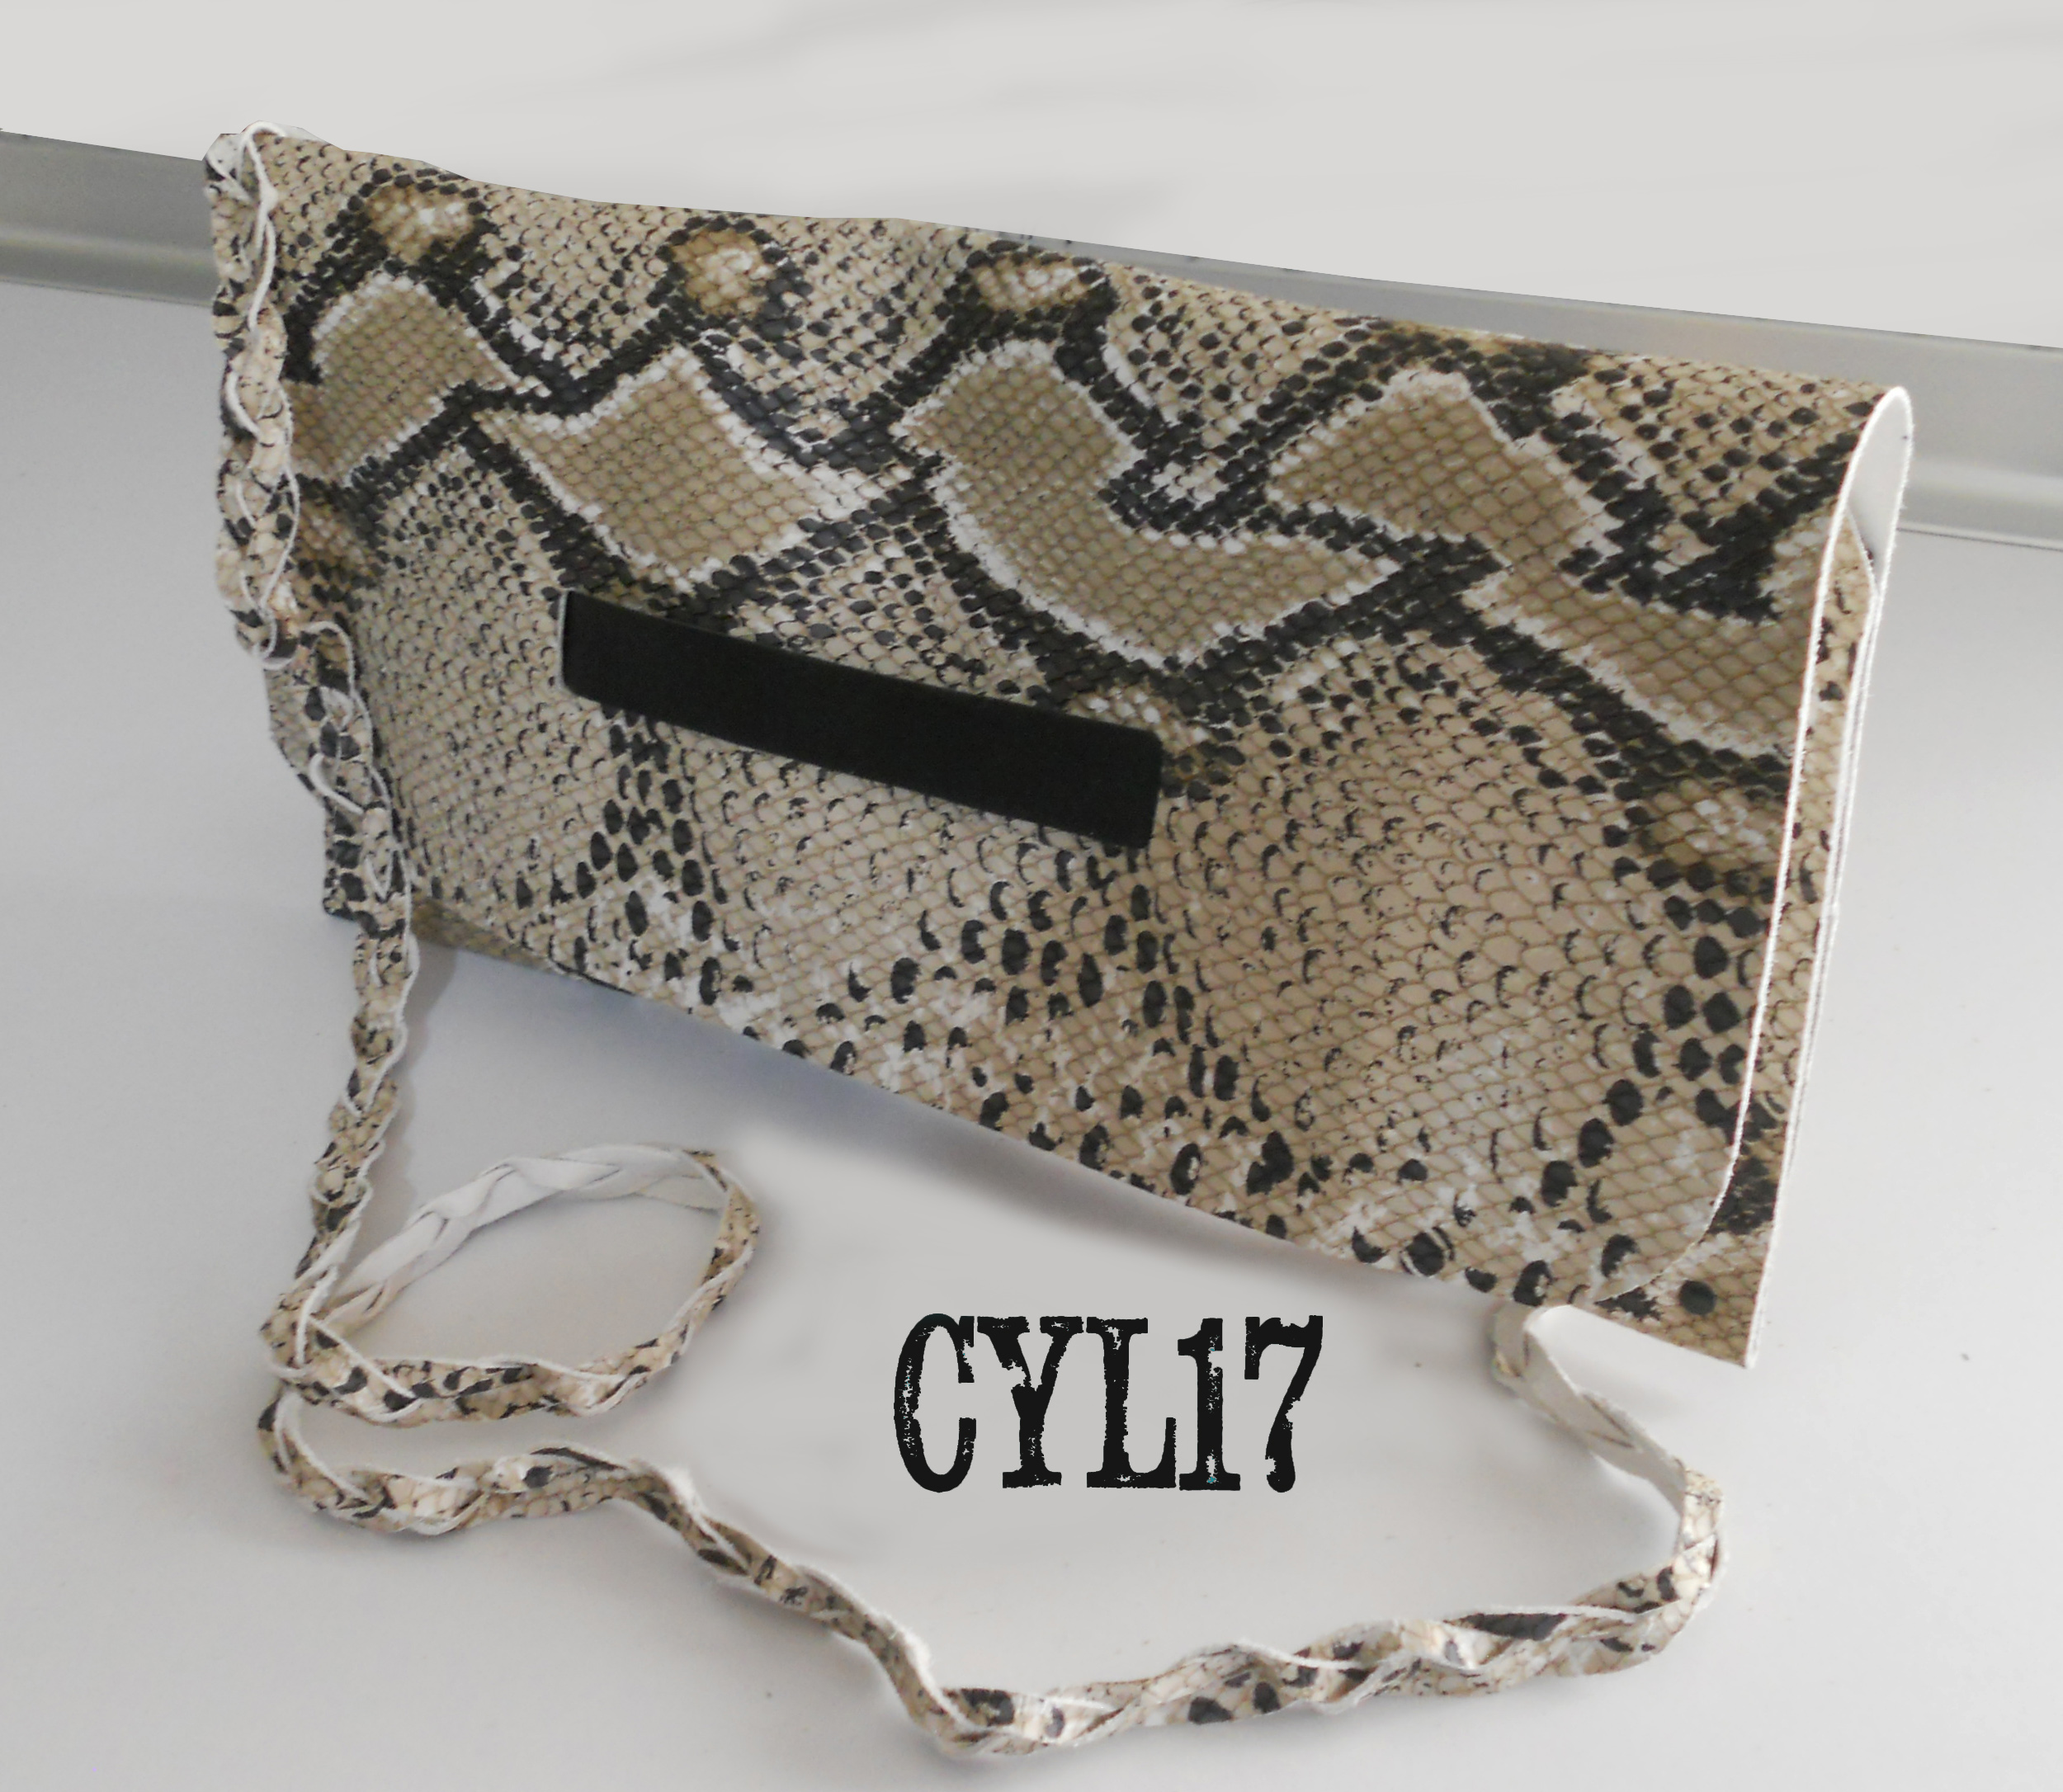 pochette bag borsa clutch  in pelle stam